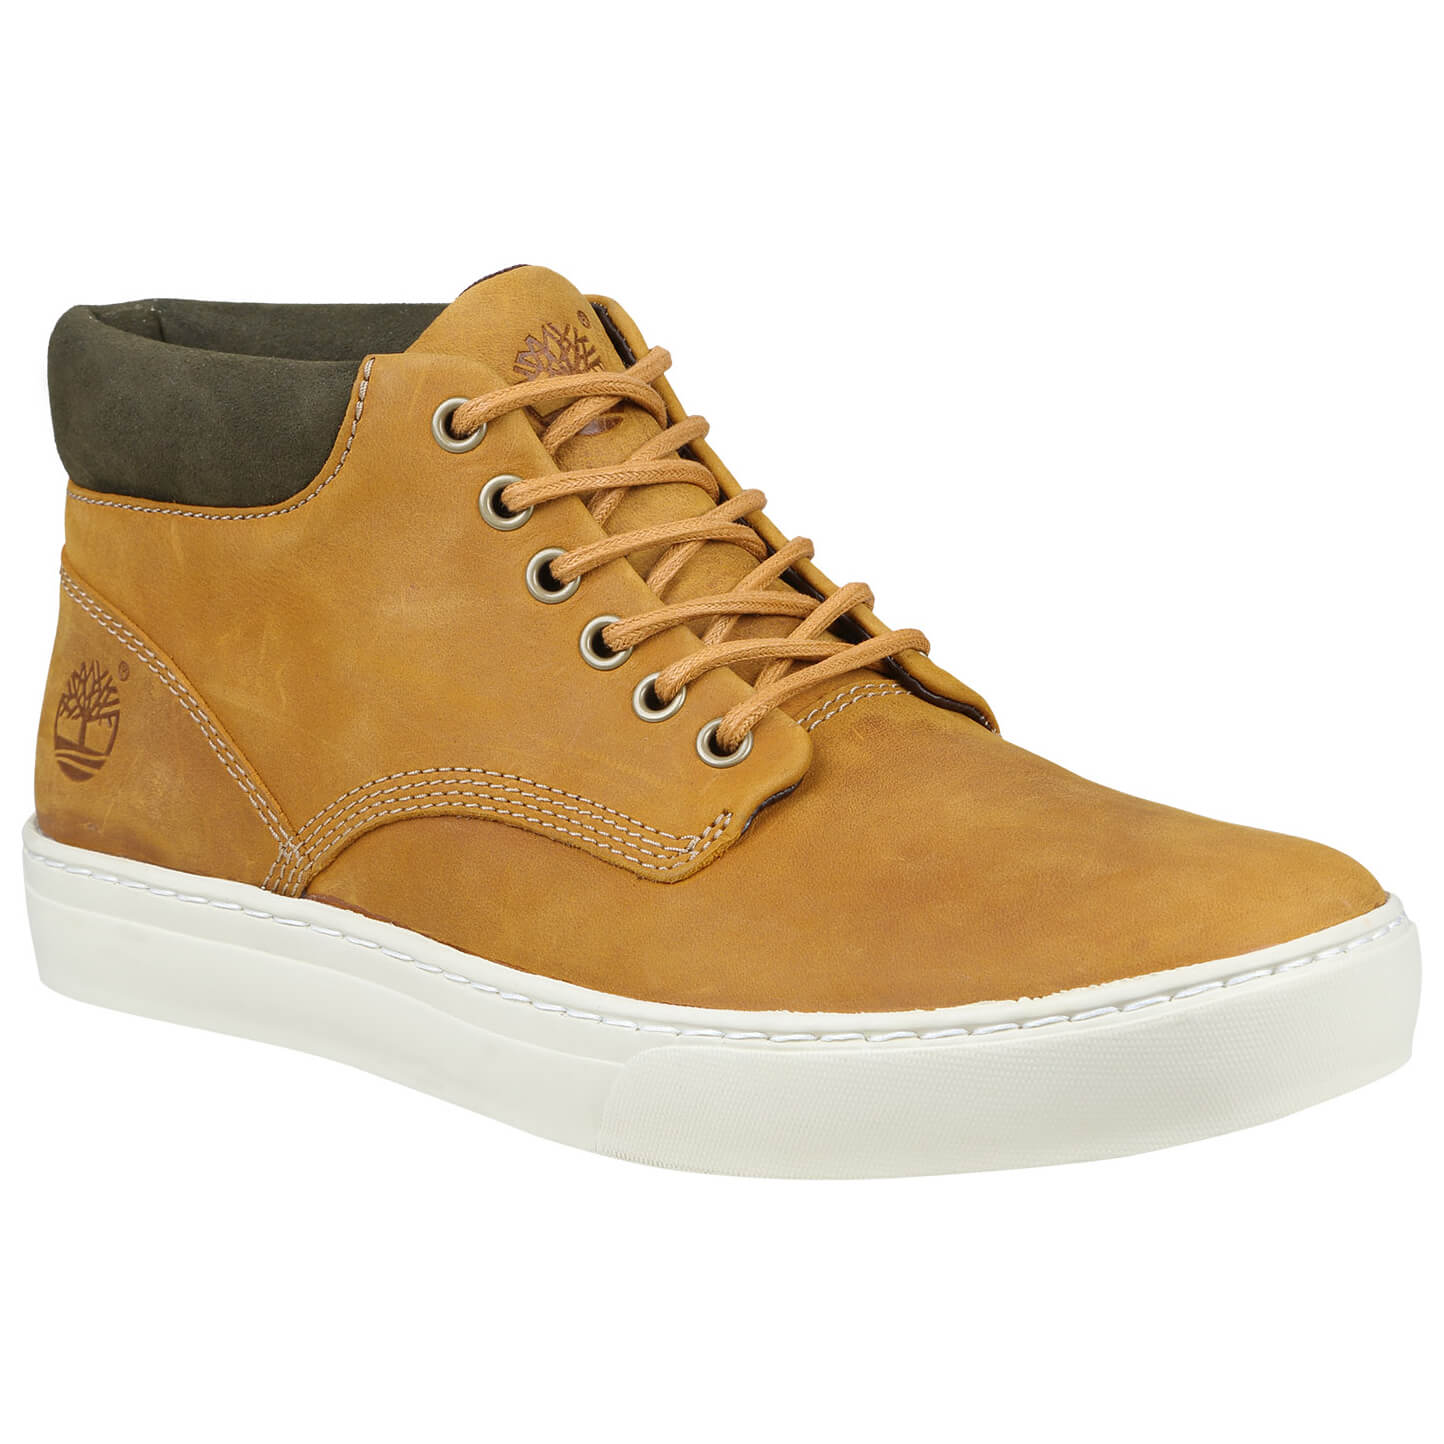 timberland adventure 2 0 cupsole chukka sneakers heren gratis verzending. Black Bedroom Furniture Sets. Home Design Ideas